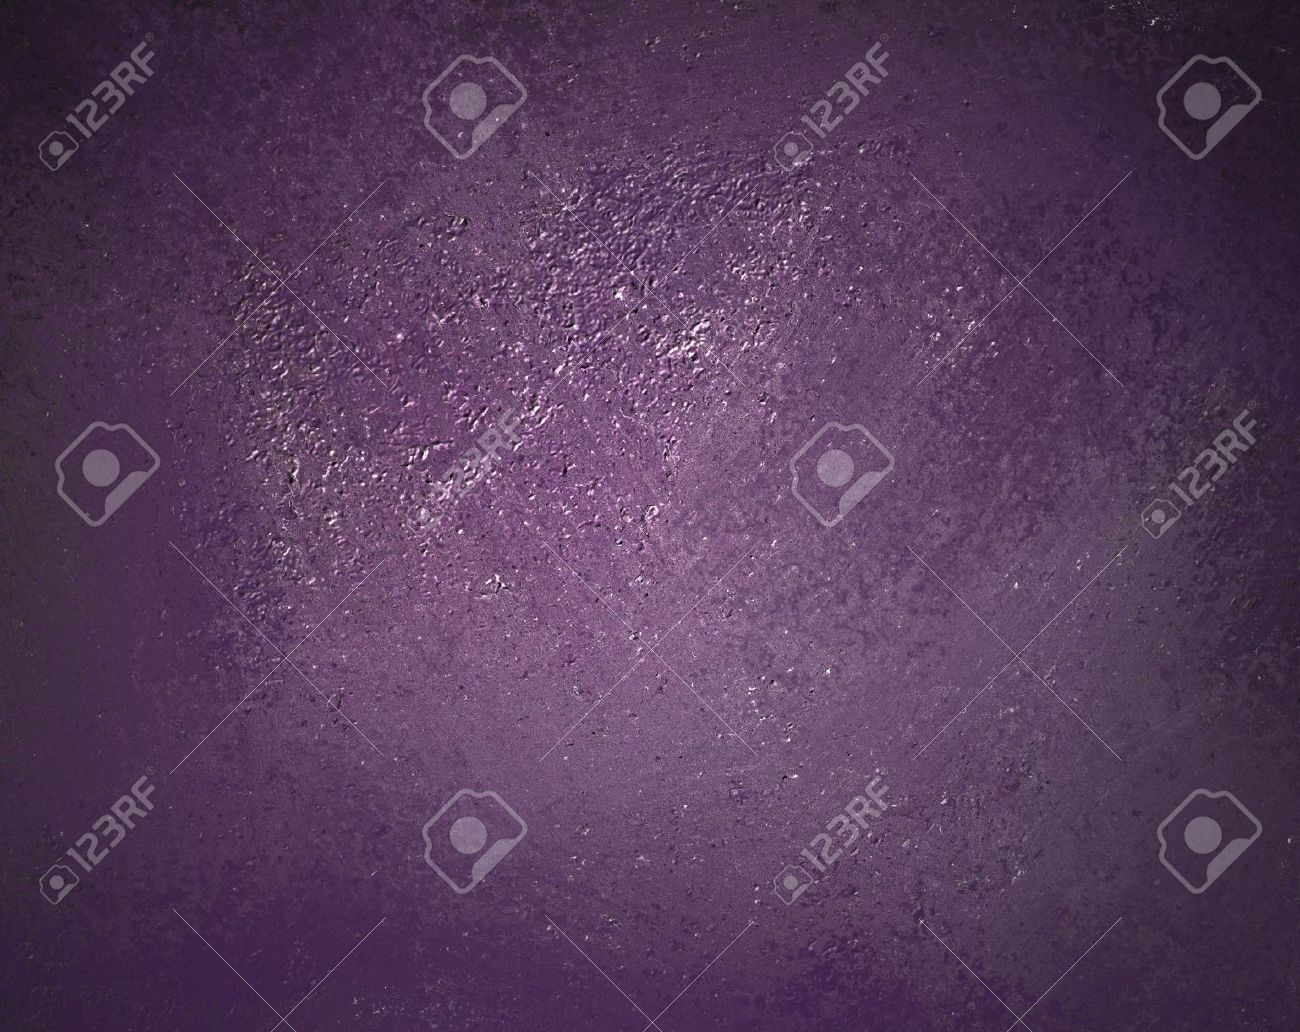 abstract purple background black design with vintage grunge background texture  purple paper wallpaper for brochure or website background, elegant luxury background cement or plaster wall illustration Stock Illustration - 14793055